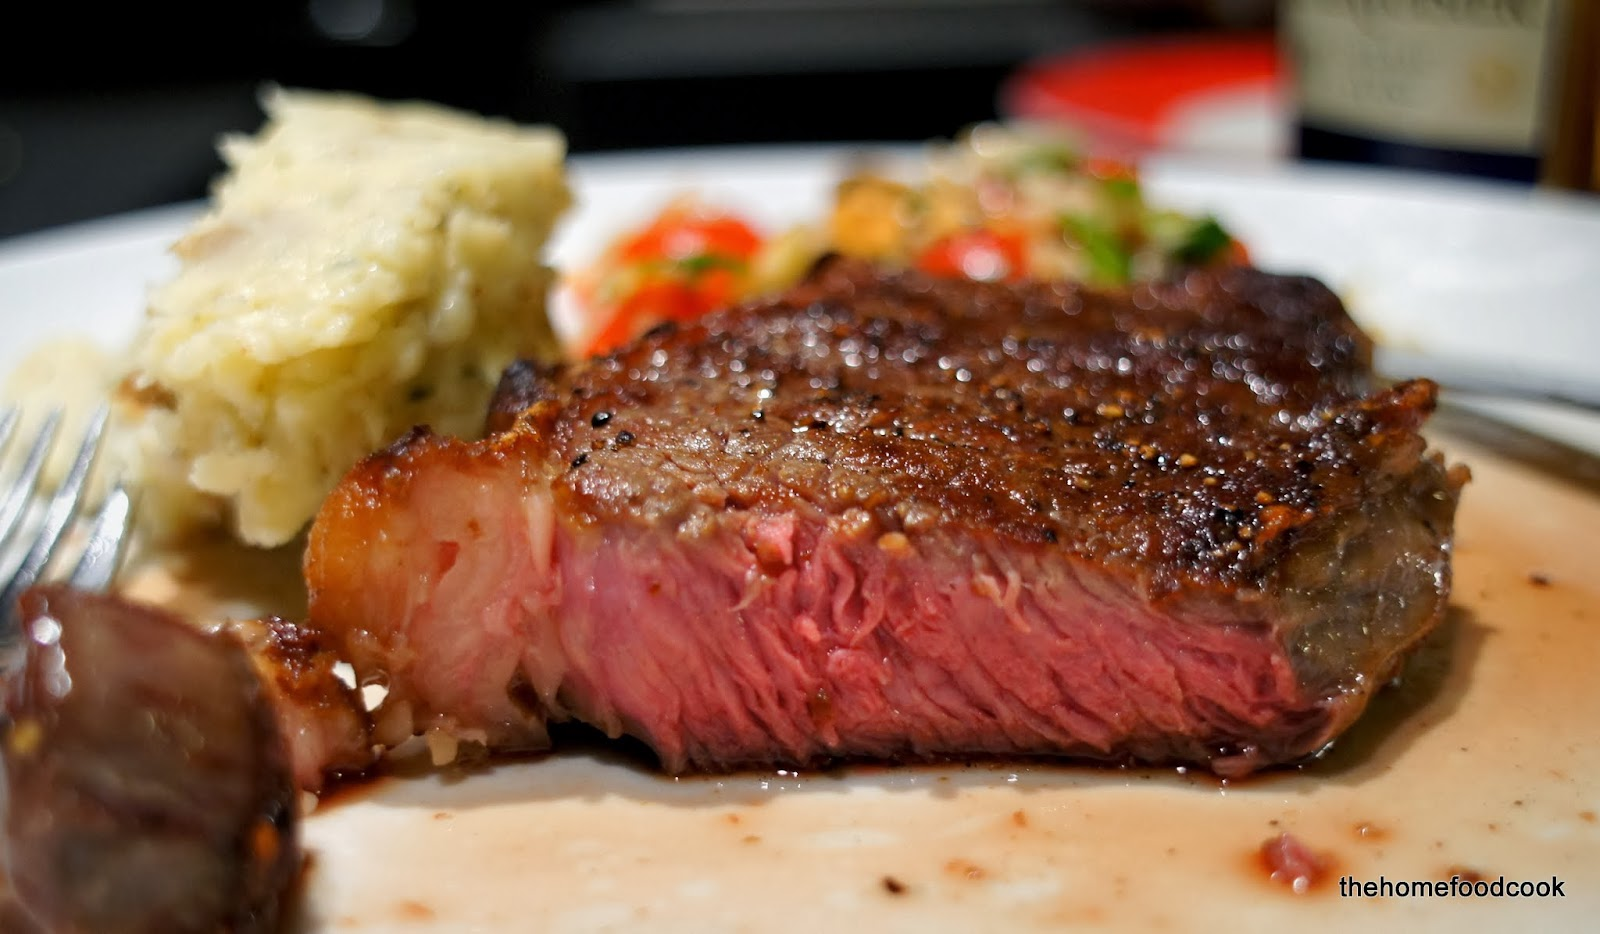 Layer and serve then stuff your face and crawl to the for Porterhouse steak